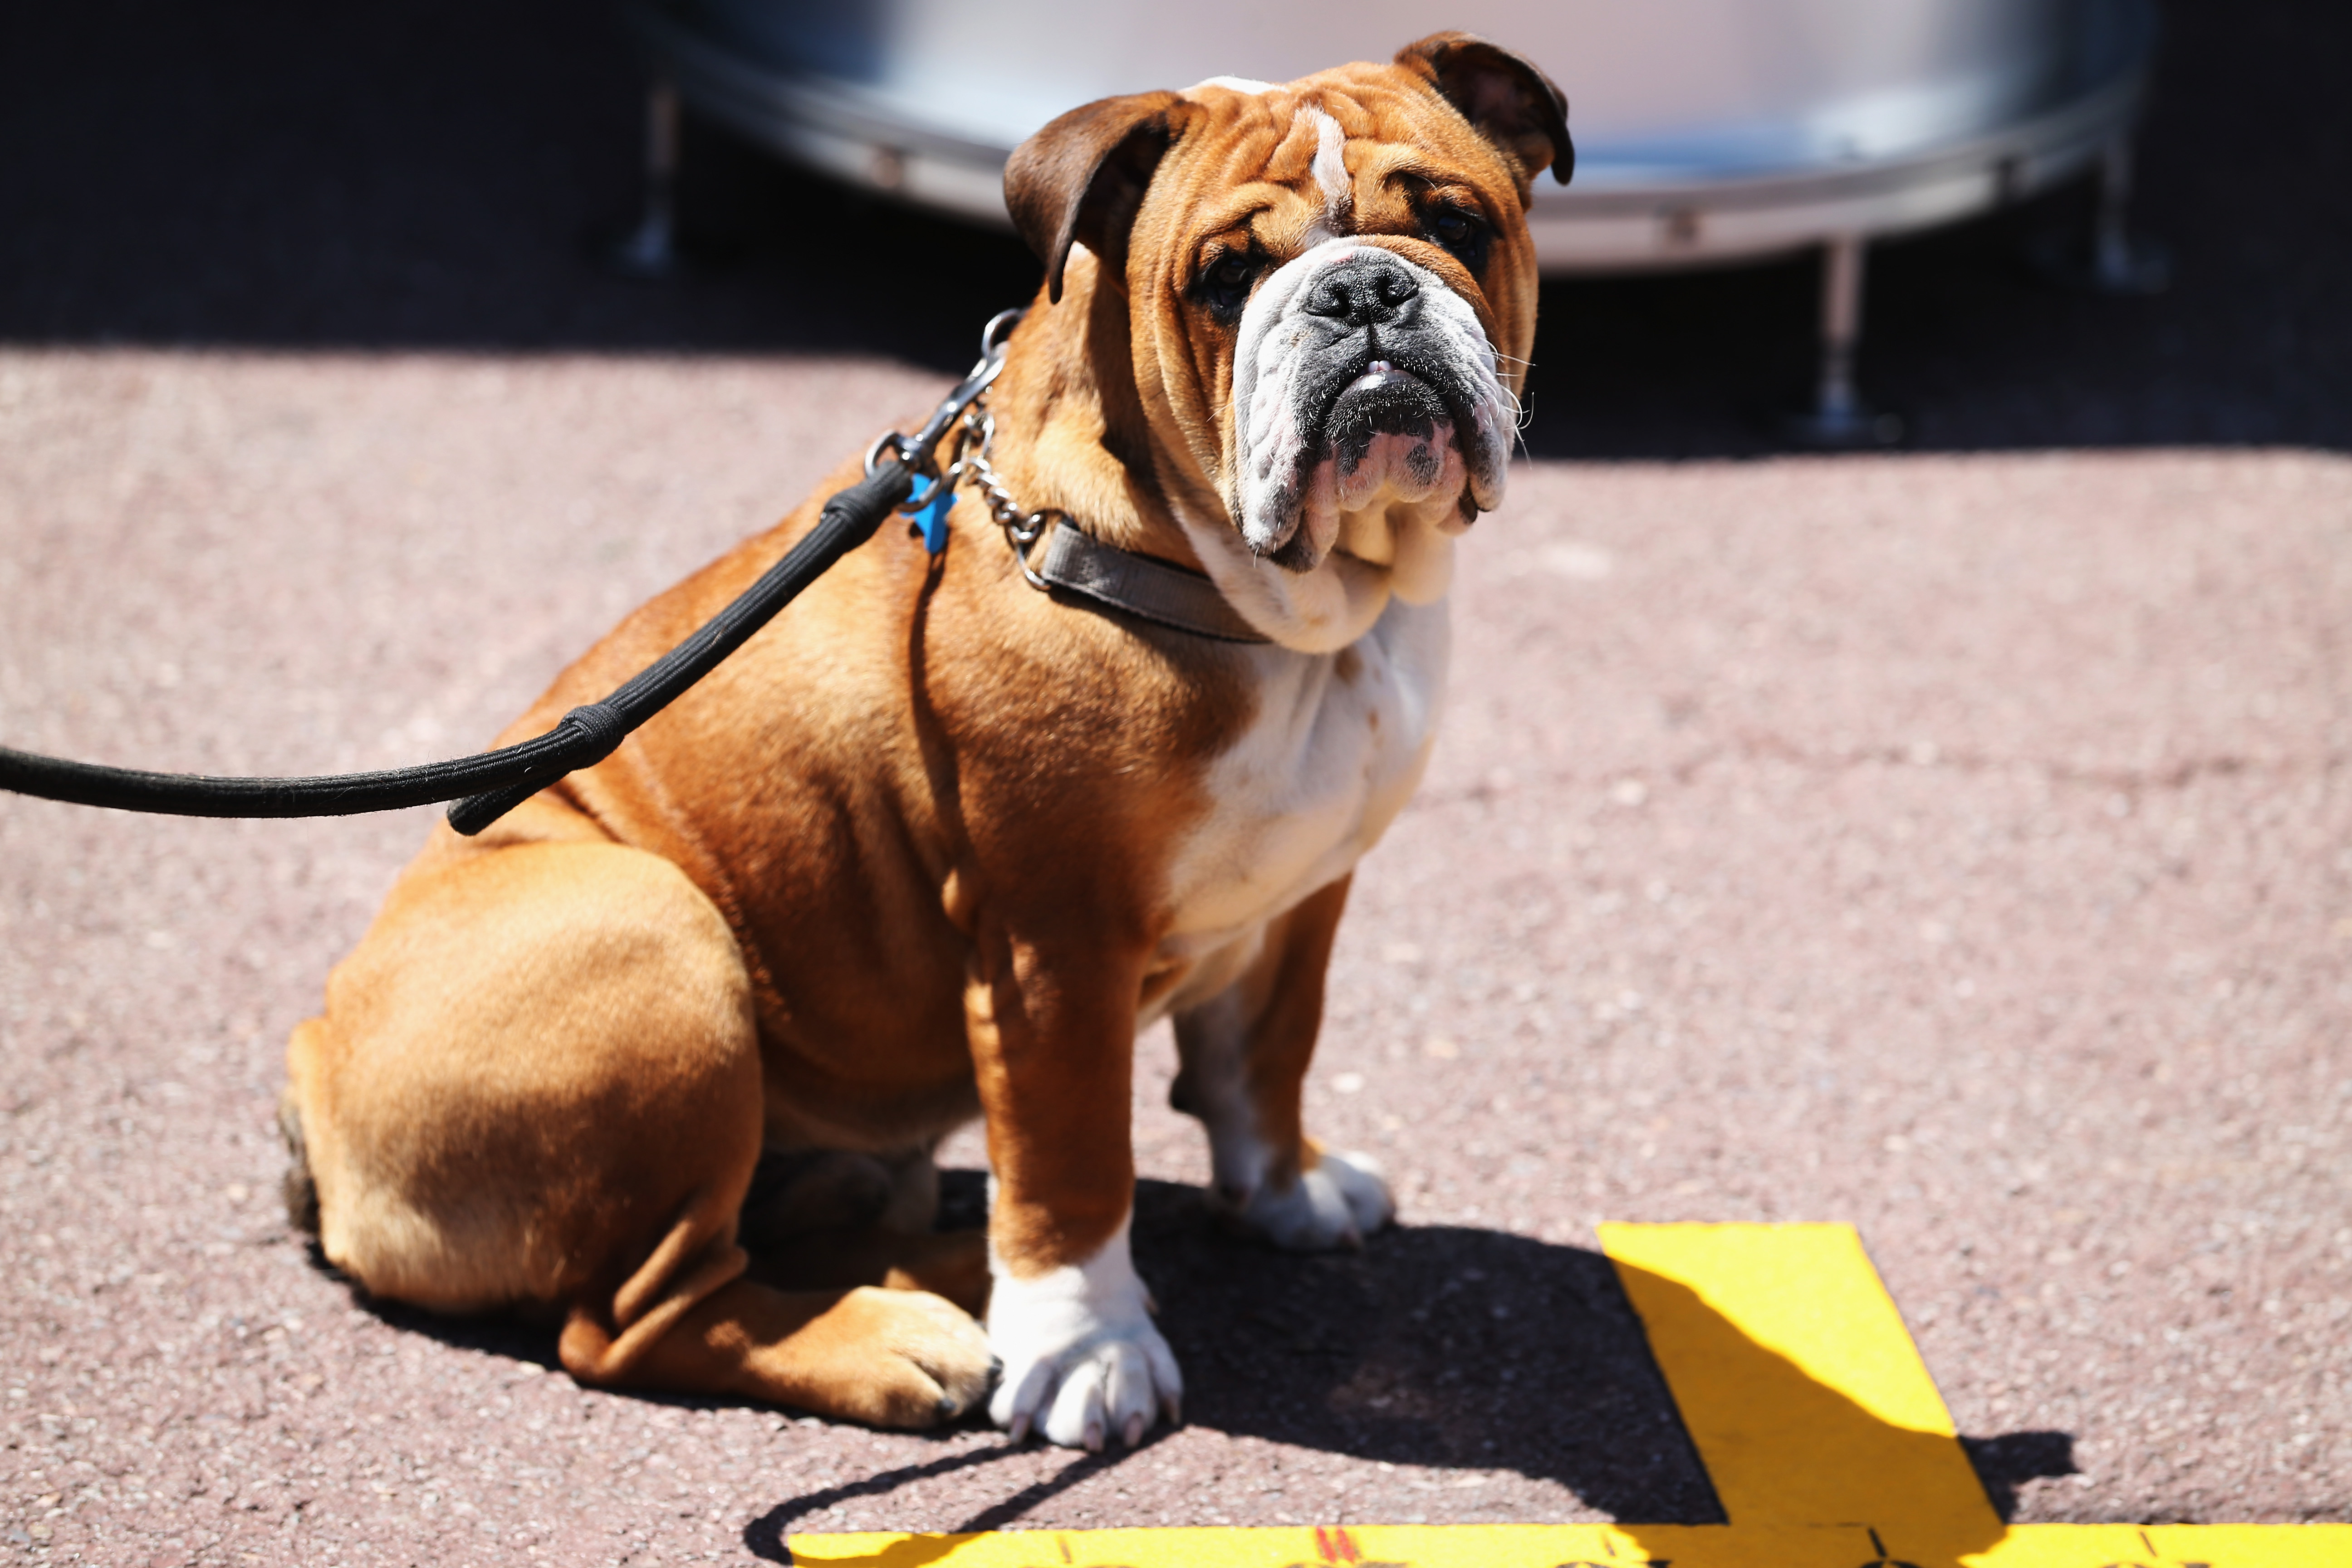 What's the best way to stop your neighbor's barking dog?